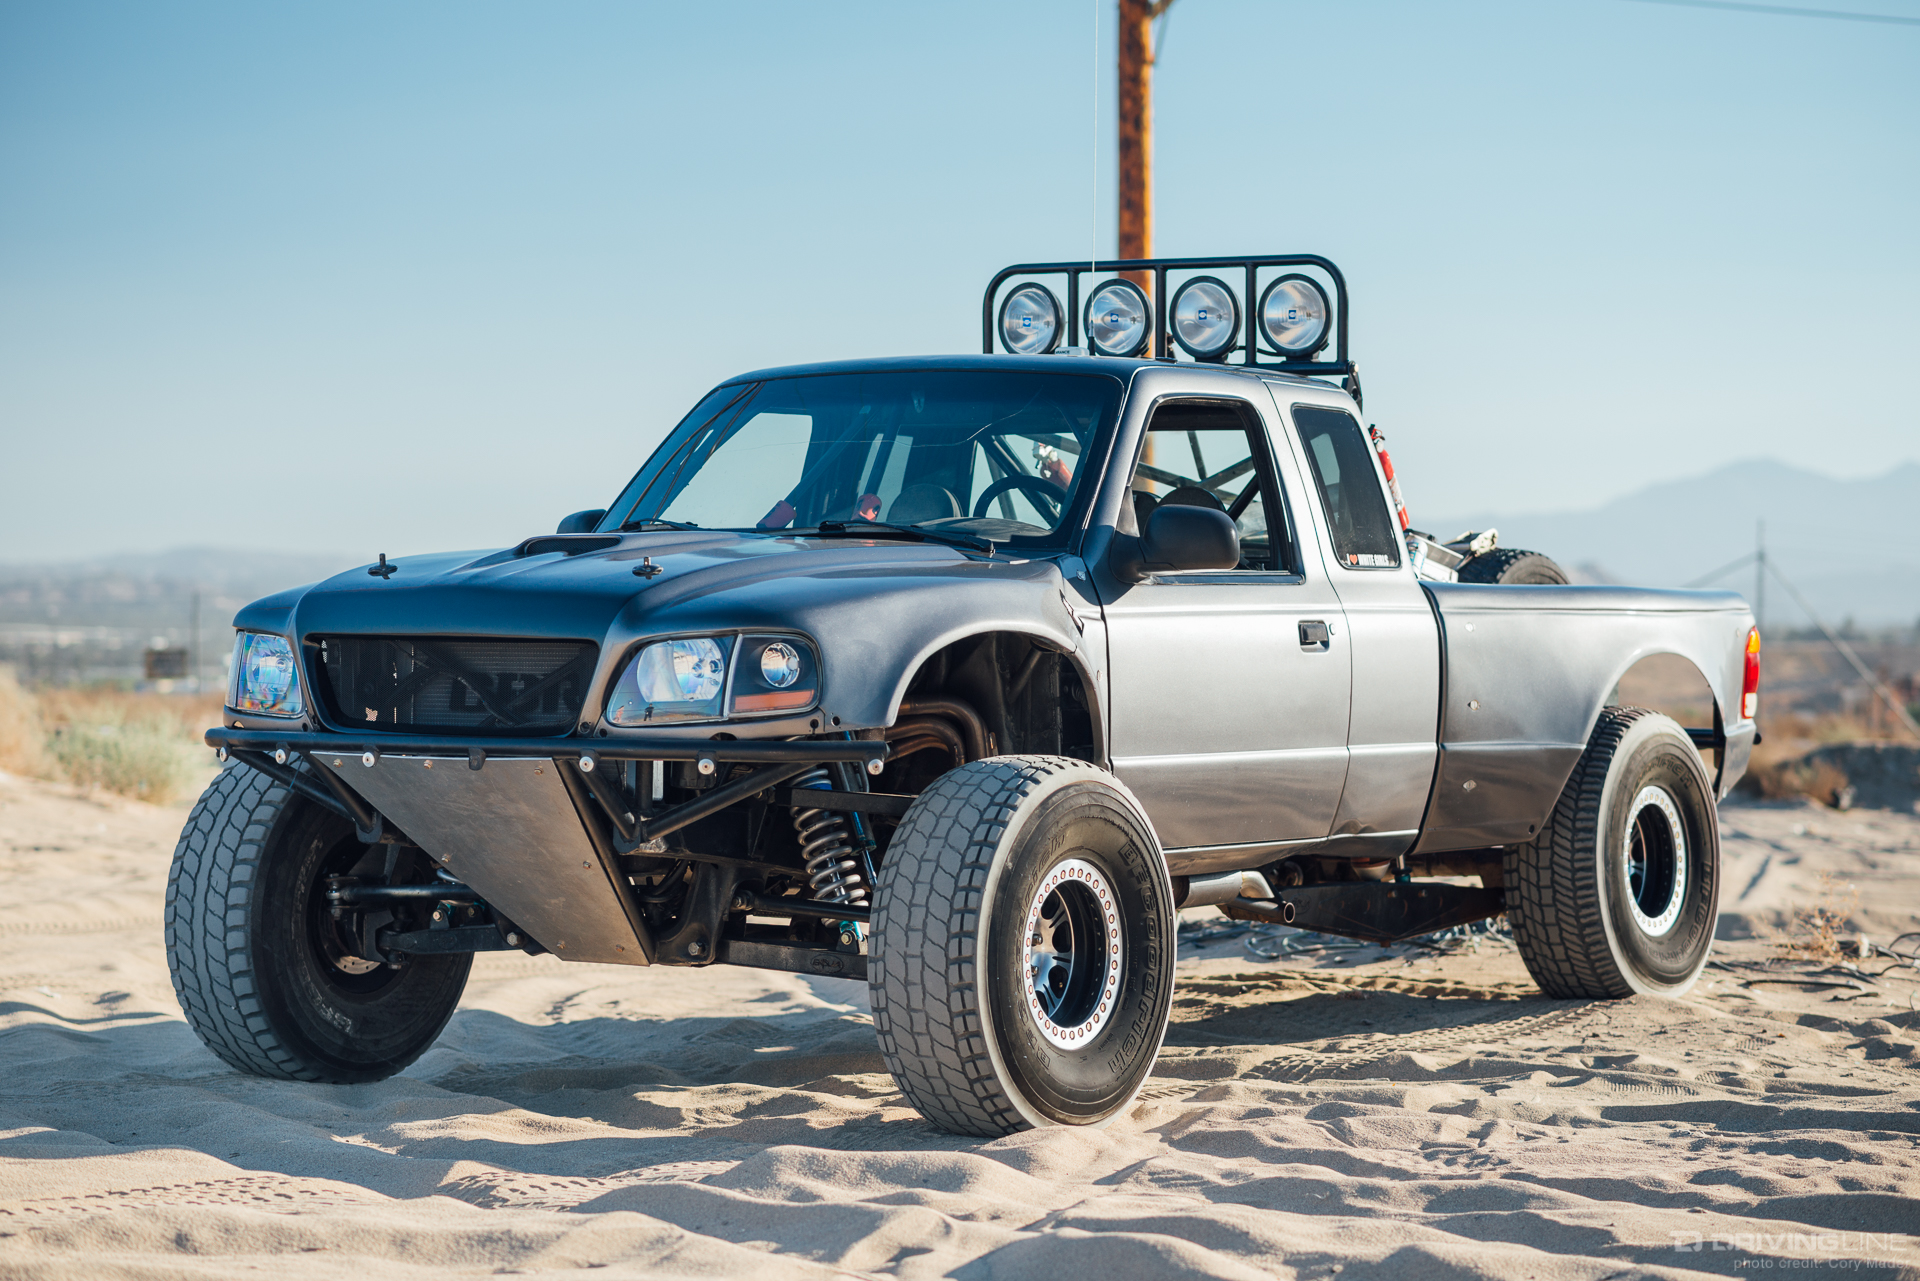 Desert Prerunners For Sale >> Jr's Desert-Dominating Ford Ranger Prerunner | DrivingLine